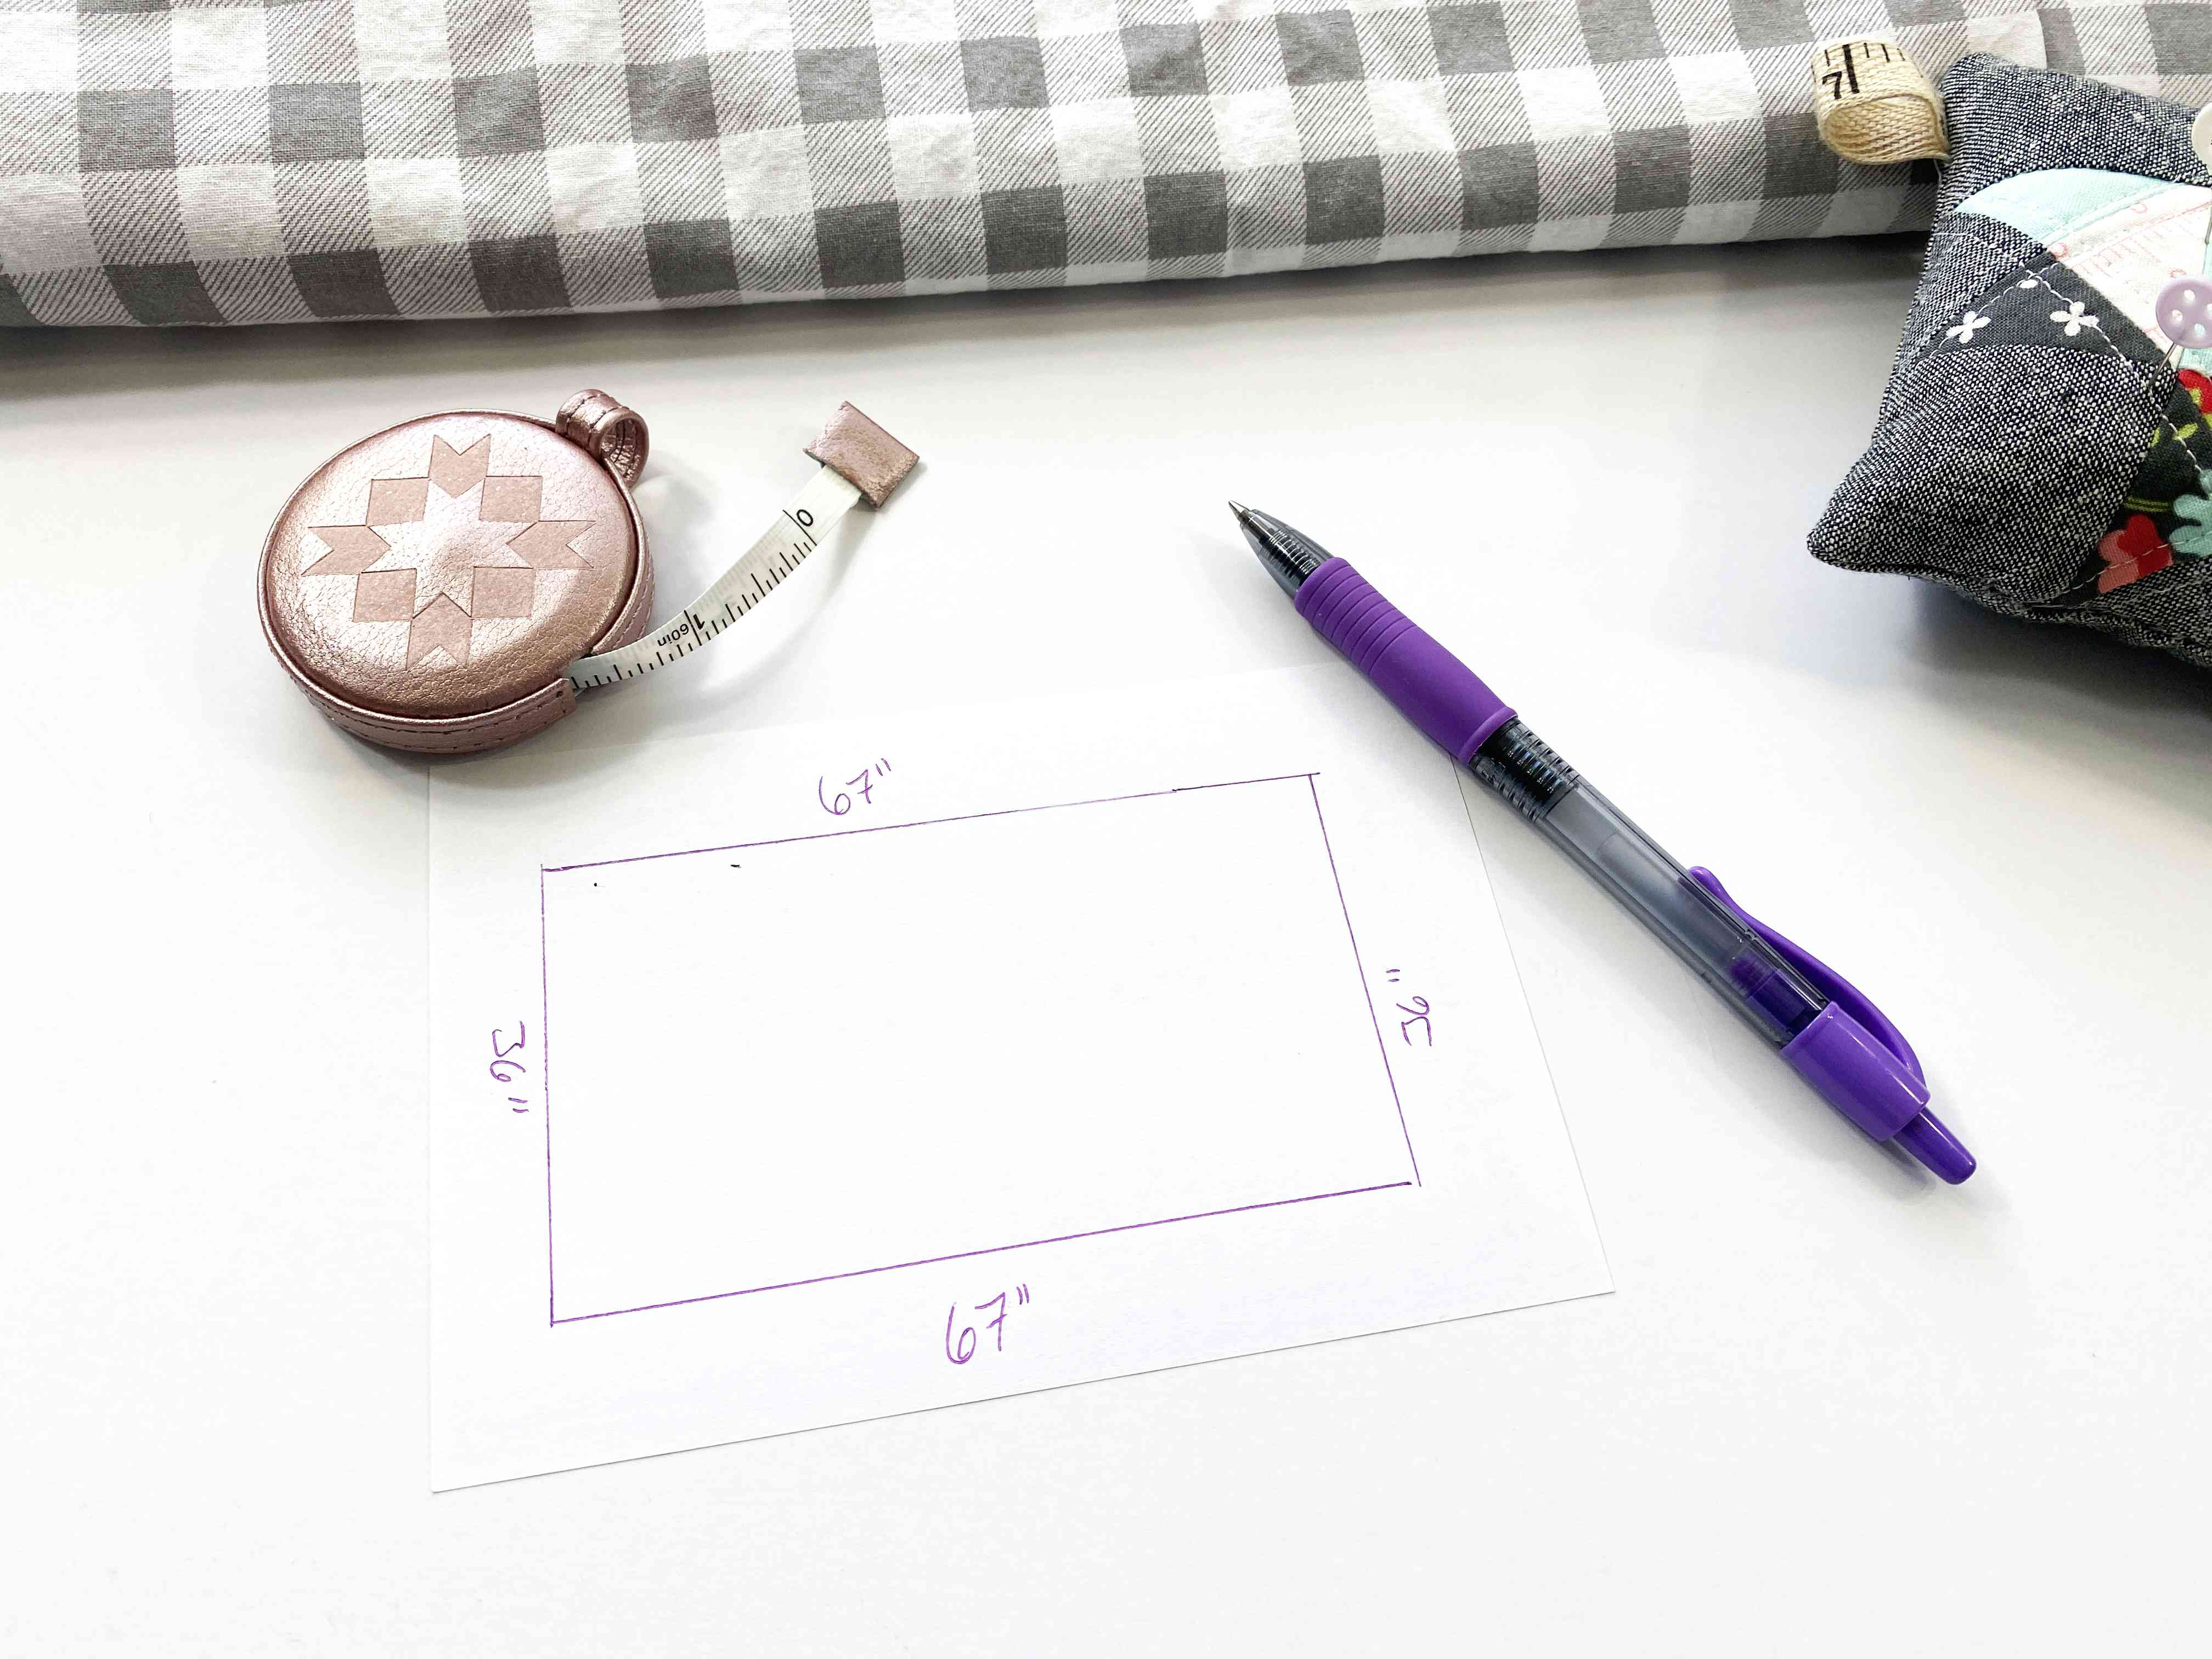 A diagram of a table with a pen and other sewing notions